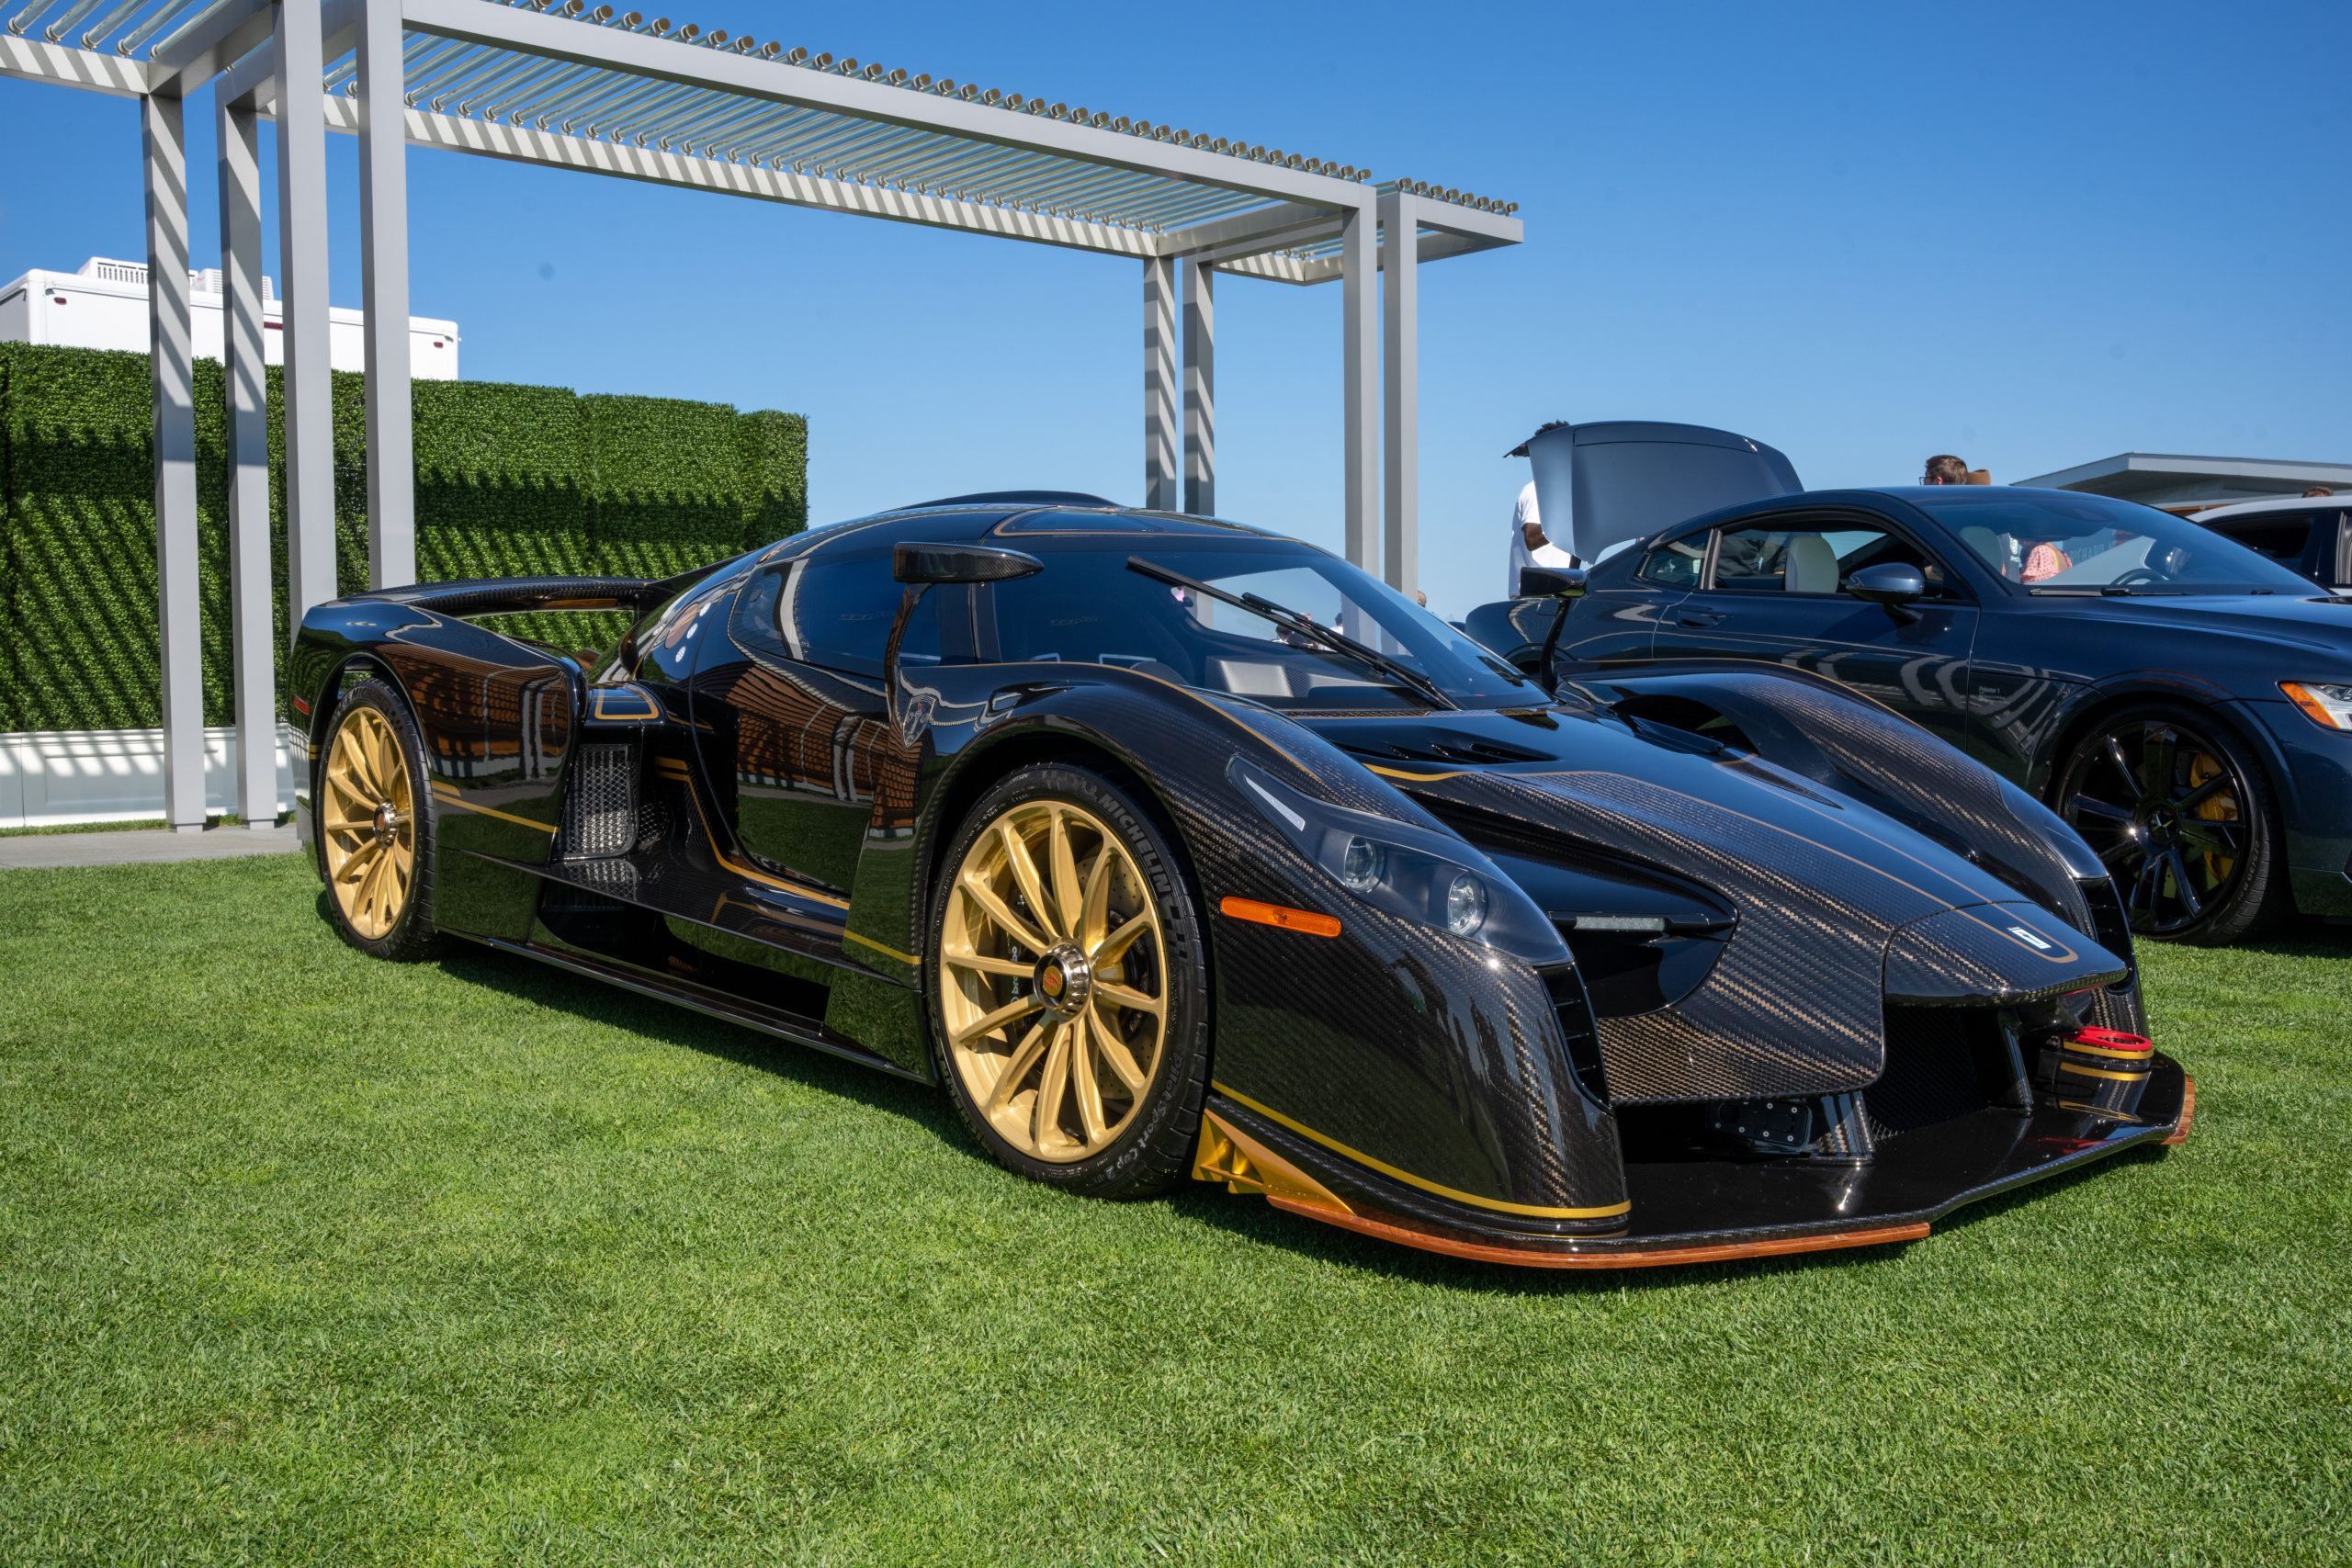 A Glickenhaus 003 SCG supercar, one of the many exotic cars to greet guests at The Bridge this past Saturday.